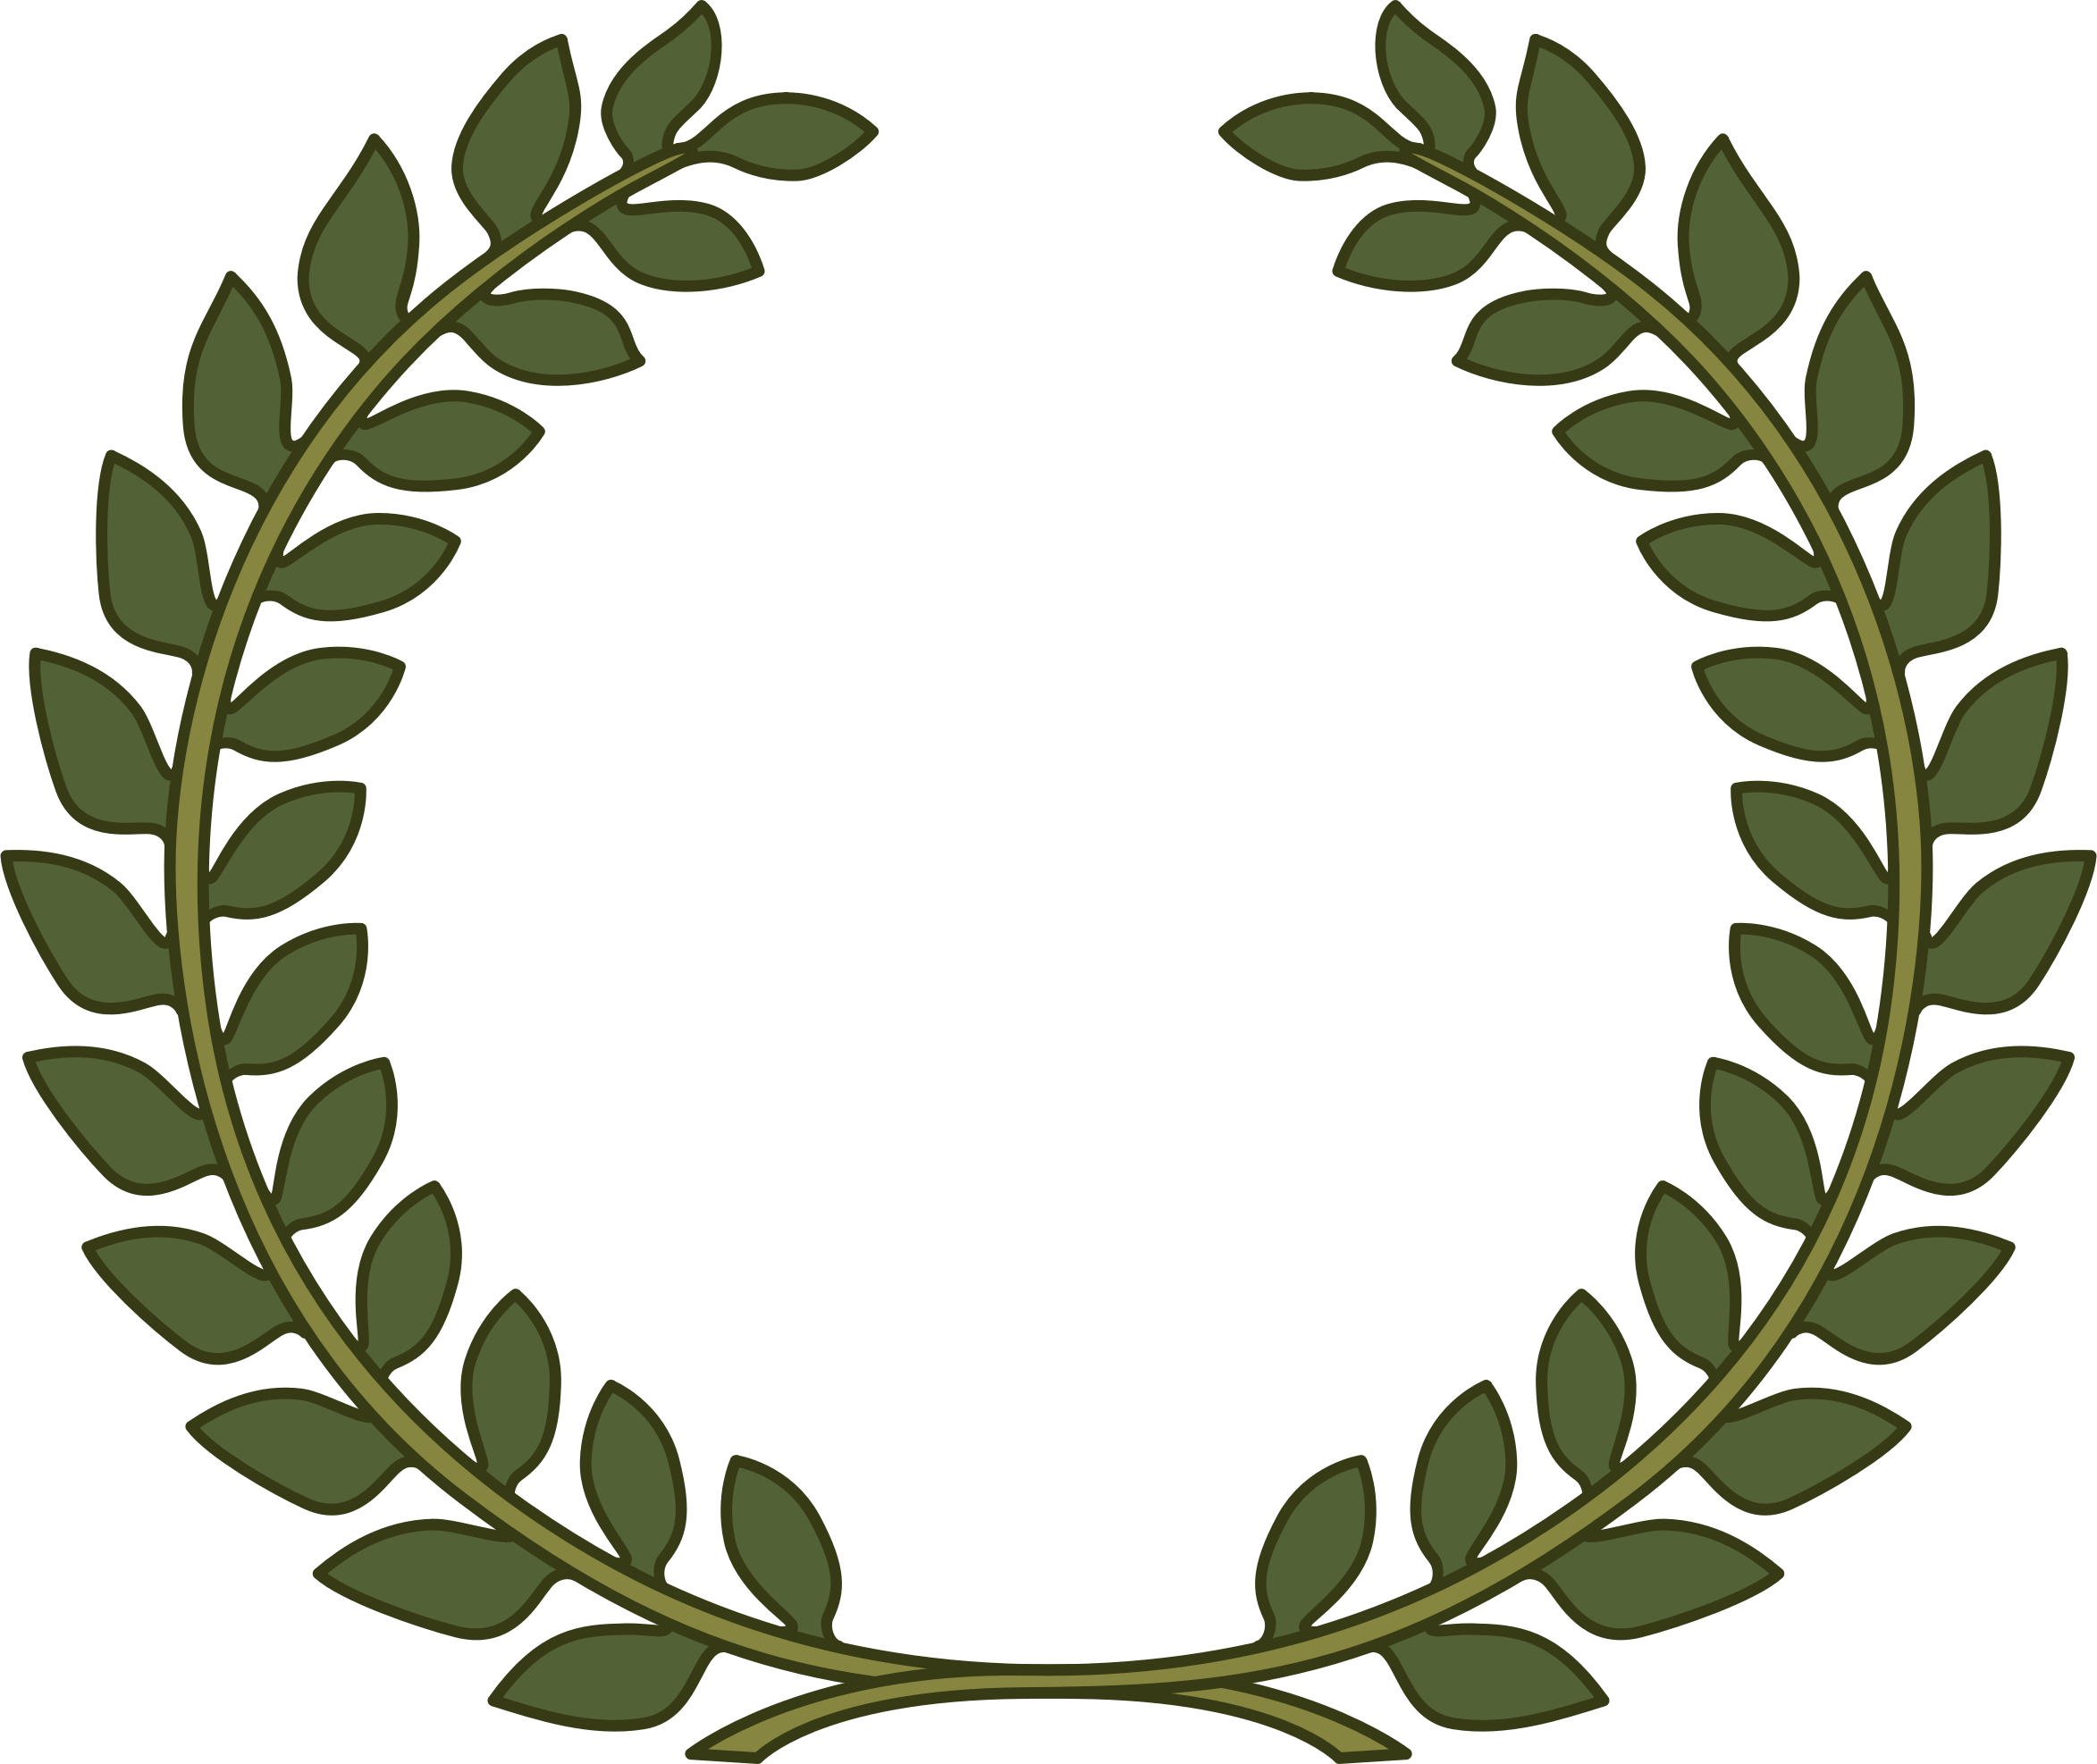 Clipart laurel wreath laurel leaf for Laurel leaf crown template